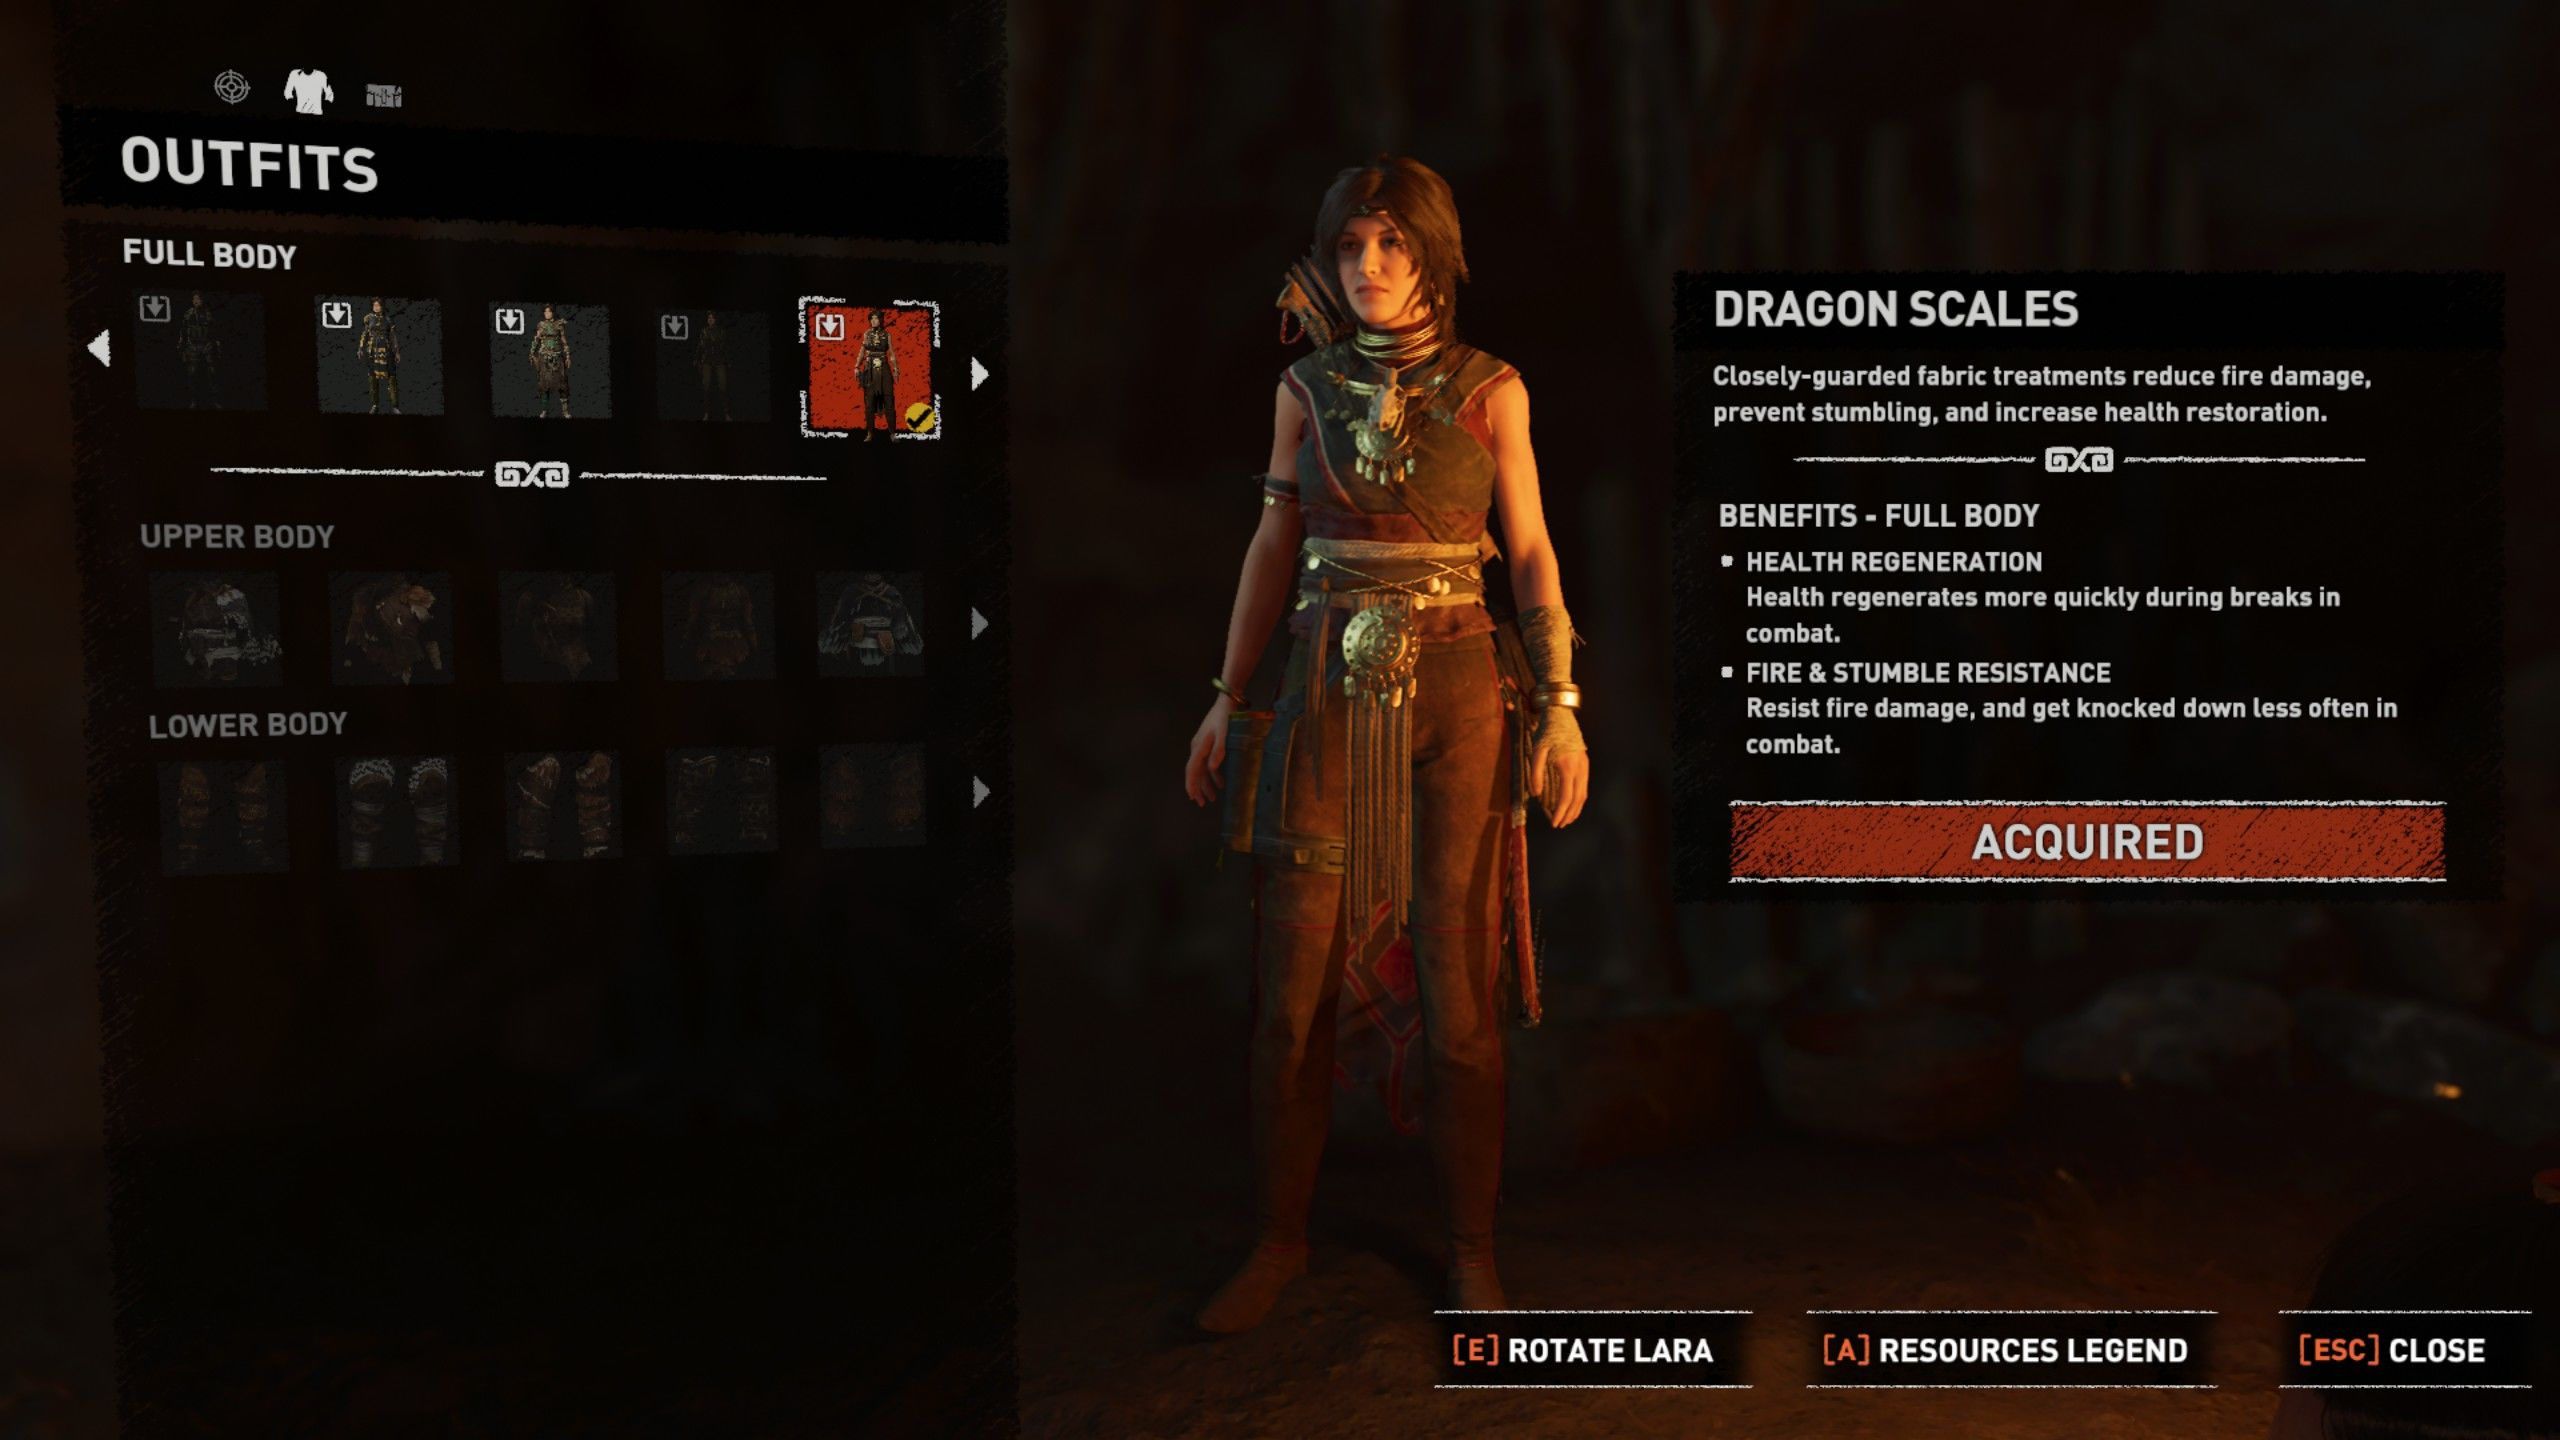 Shadow of the Tomb Raider: Myth Hunter Gear Windows Dragon Scales outfit equipped.